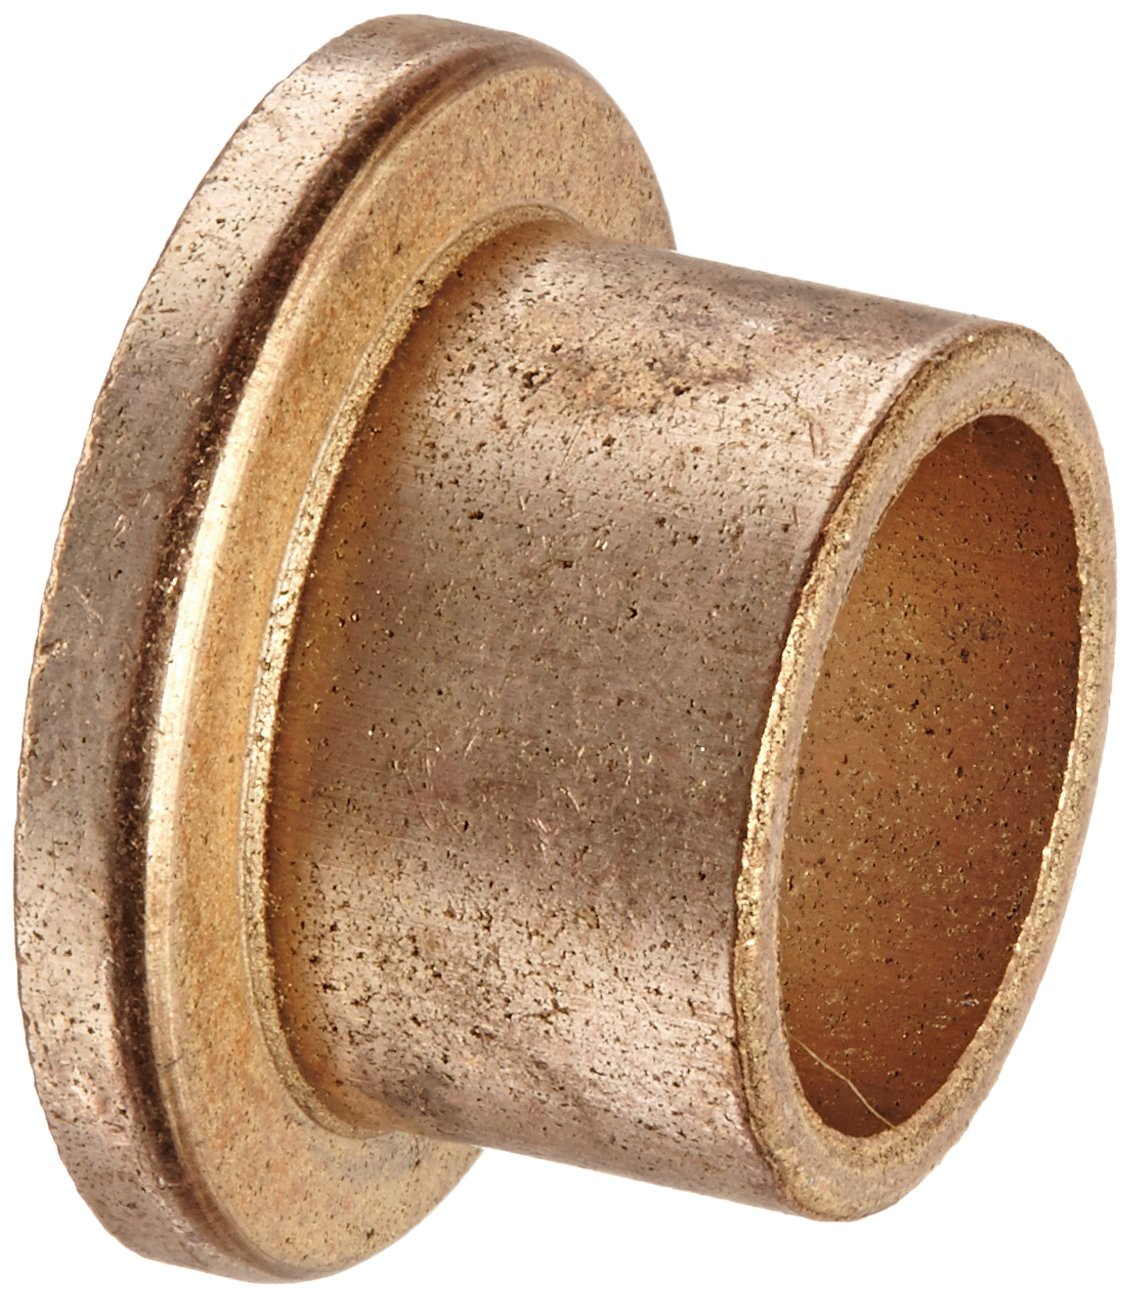 Our shop most popular Bunting Bearings Challenge the lowest price of Japan ☆ EXEF081008 Extra Lubricant with PTFE Flange Be